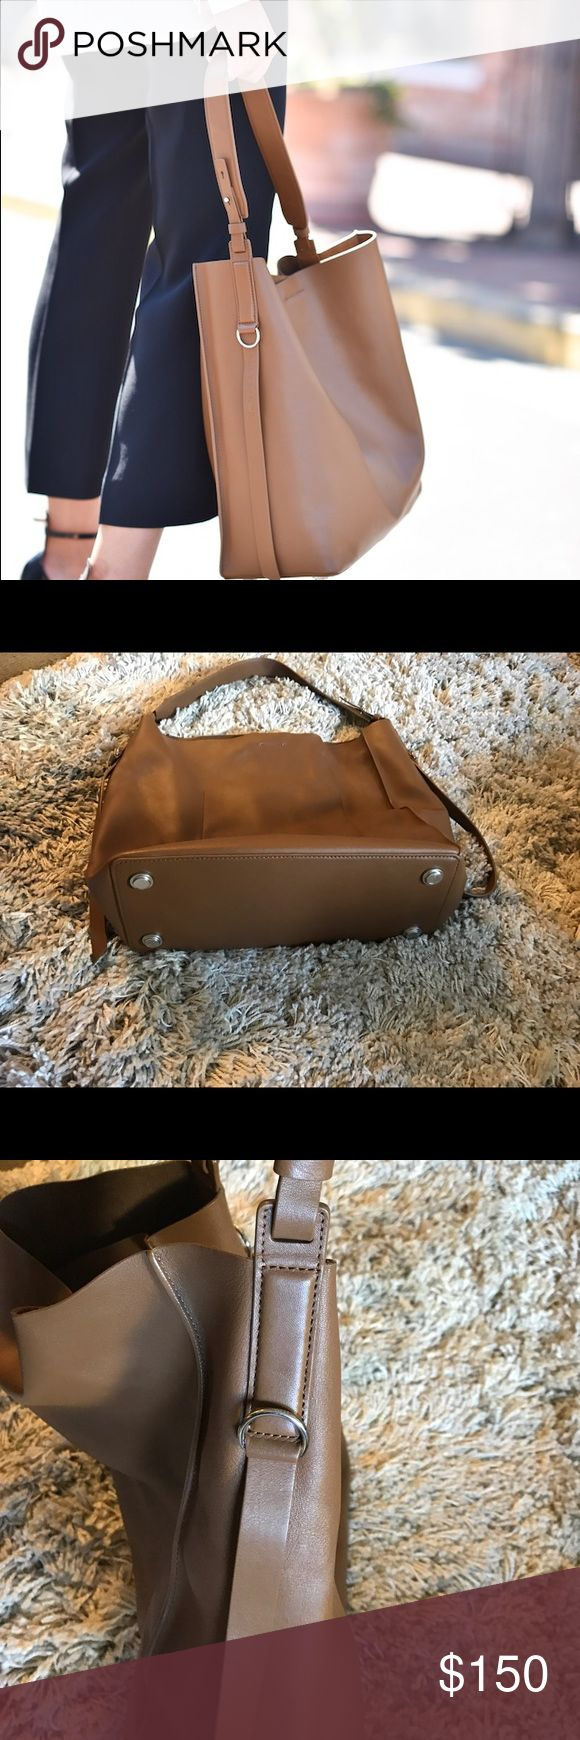 Original Allsaints leather tote This is a great leather tote bag in great conditions, look like new. The color is similar to Camel. There is an small punch like a cosmetic bag. 💯 leather. allsaints Bags Totes